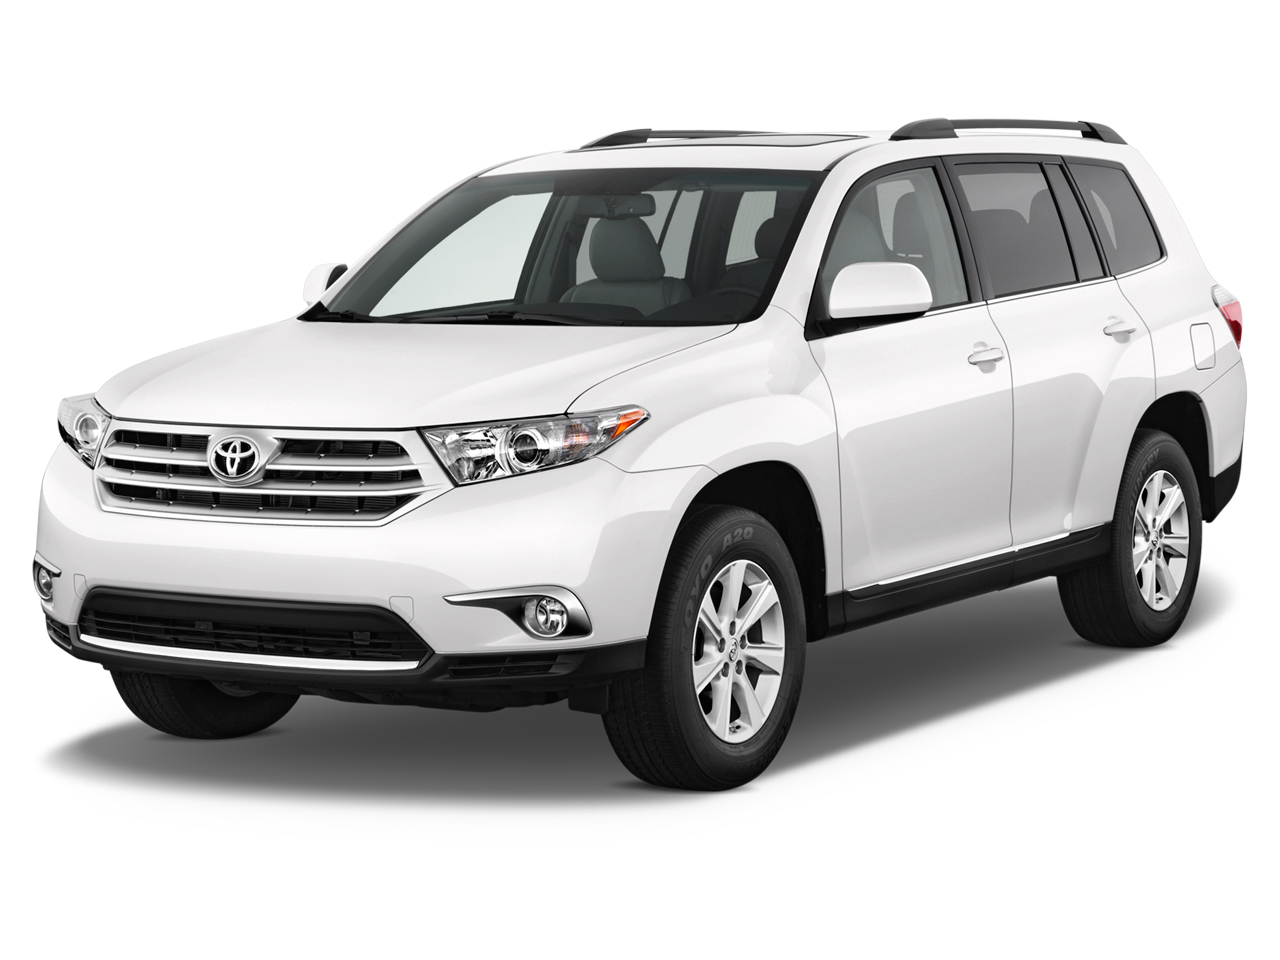 2012 toyota highlander review ratings specs prices and photos the car connection. Black Bedroom Furniture Sets. Home Design Ideas